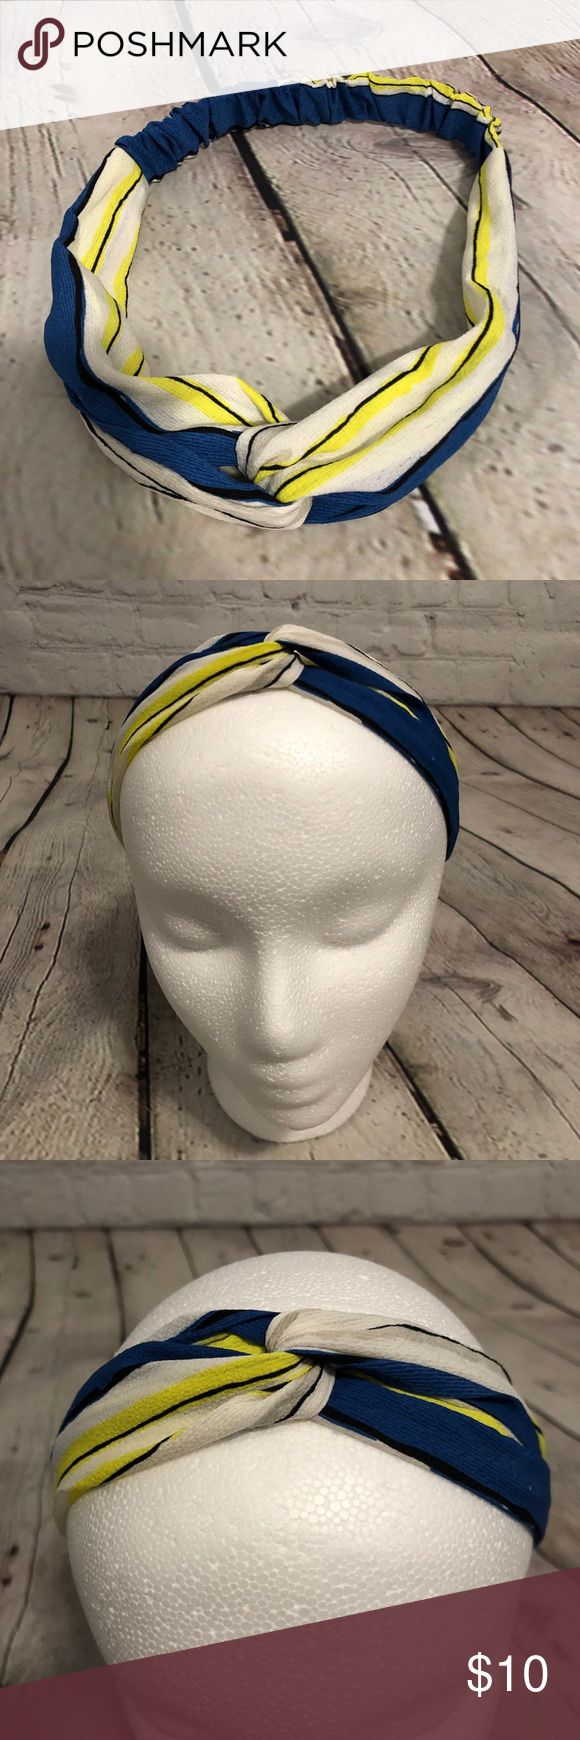 Knotted Boho Headband Stripes Cartoon Yellow White This knotted headband is super cute. It has elastic inside the fabric and it's stretchy and comfo...